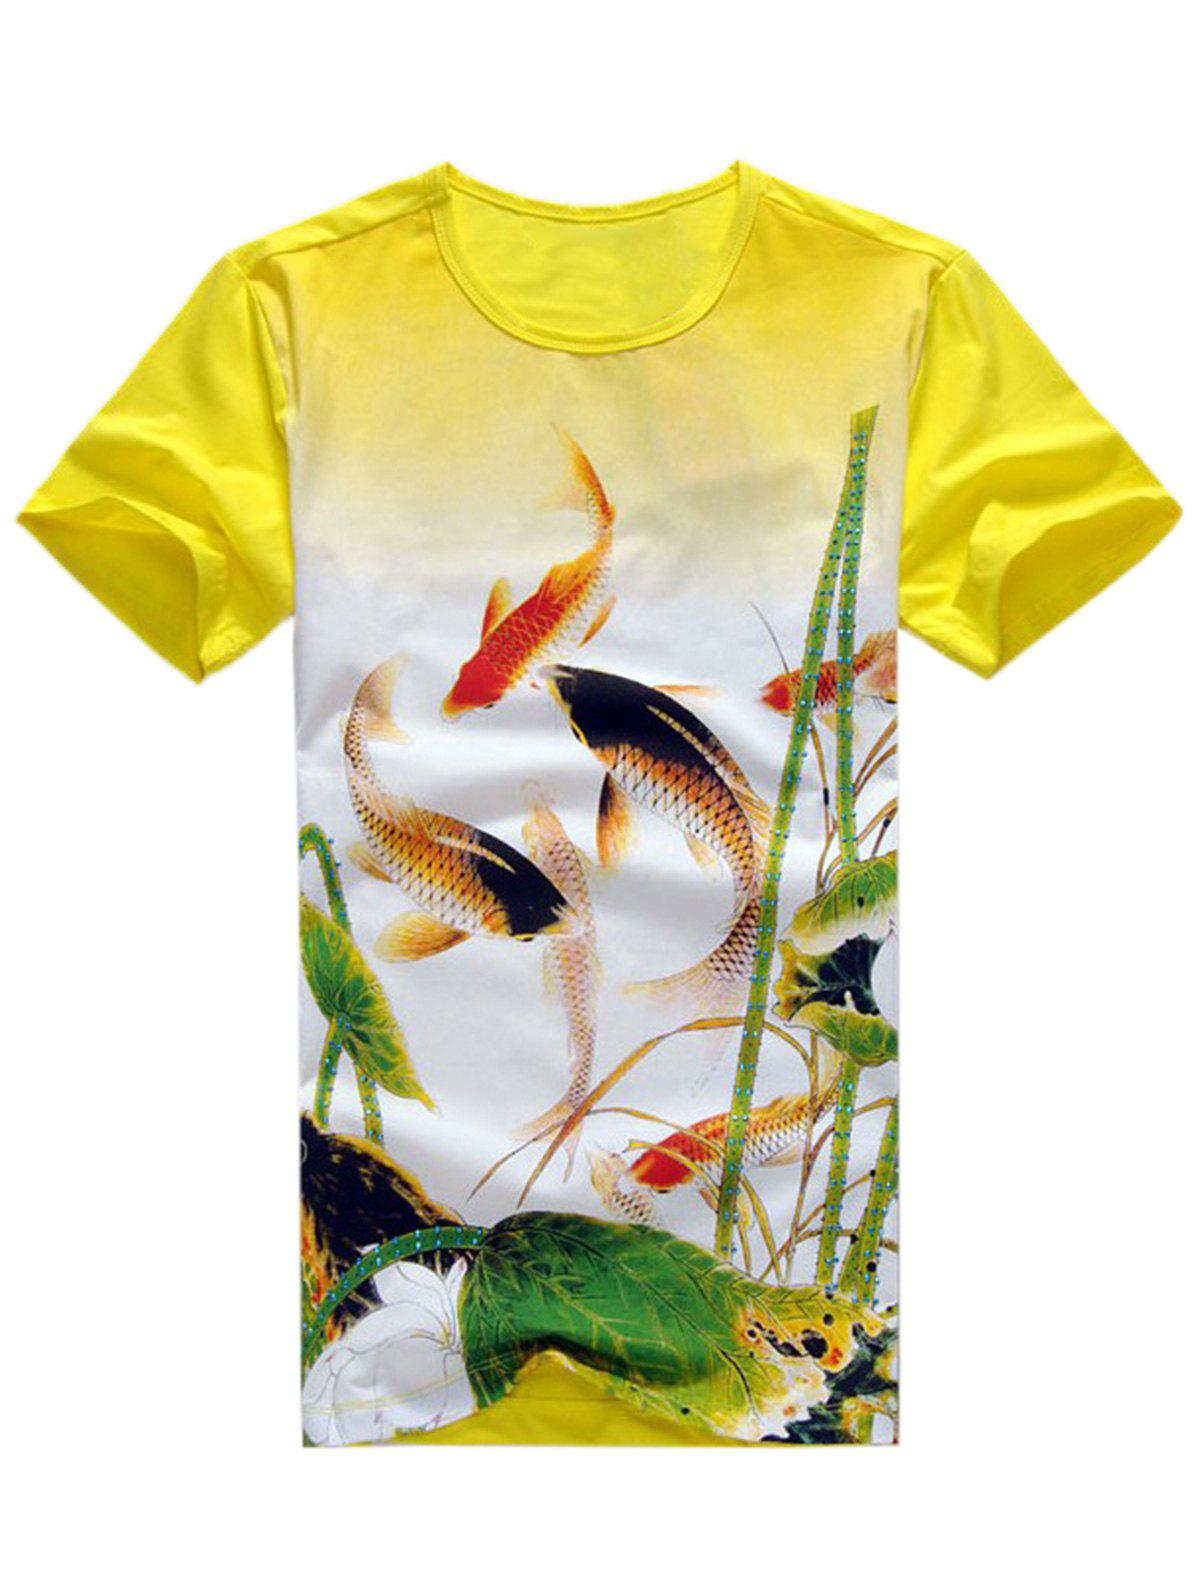 Fancy Carp Rhinestone Embellished T-shirt - YELLOW XL